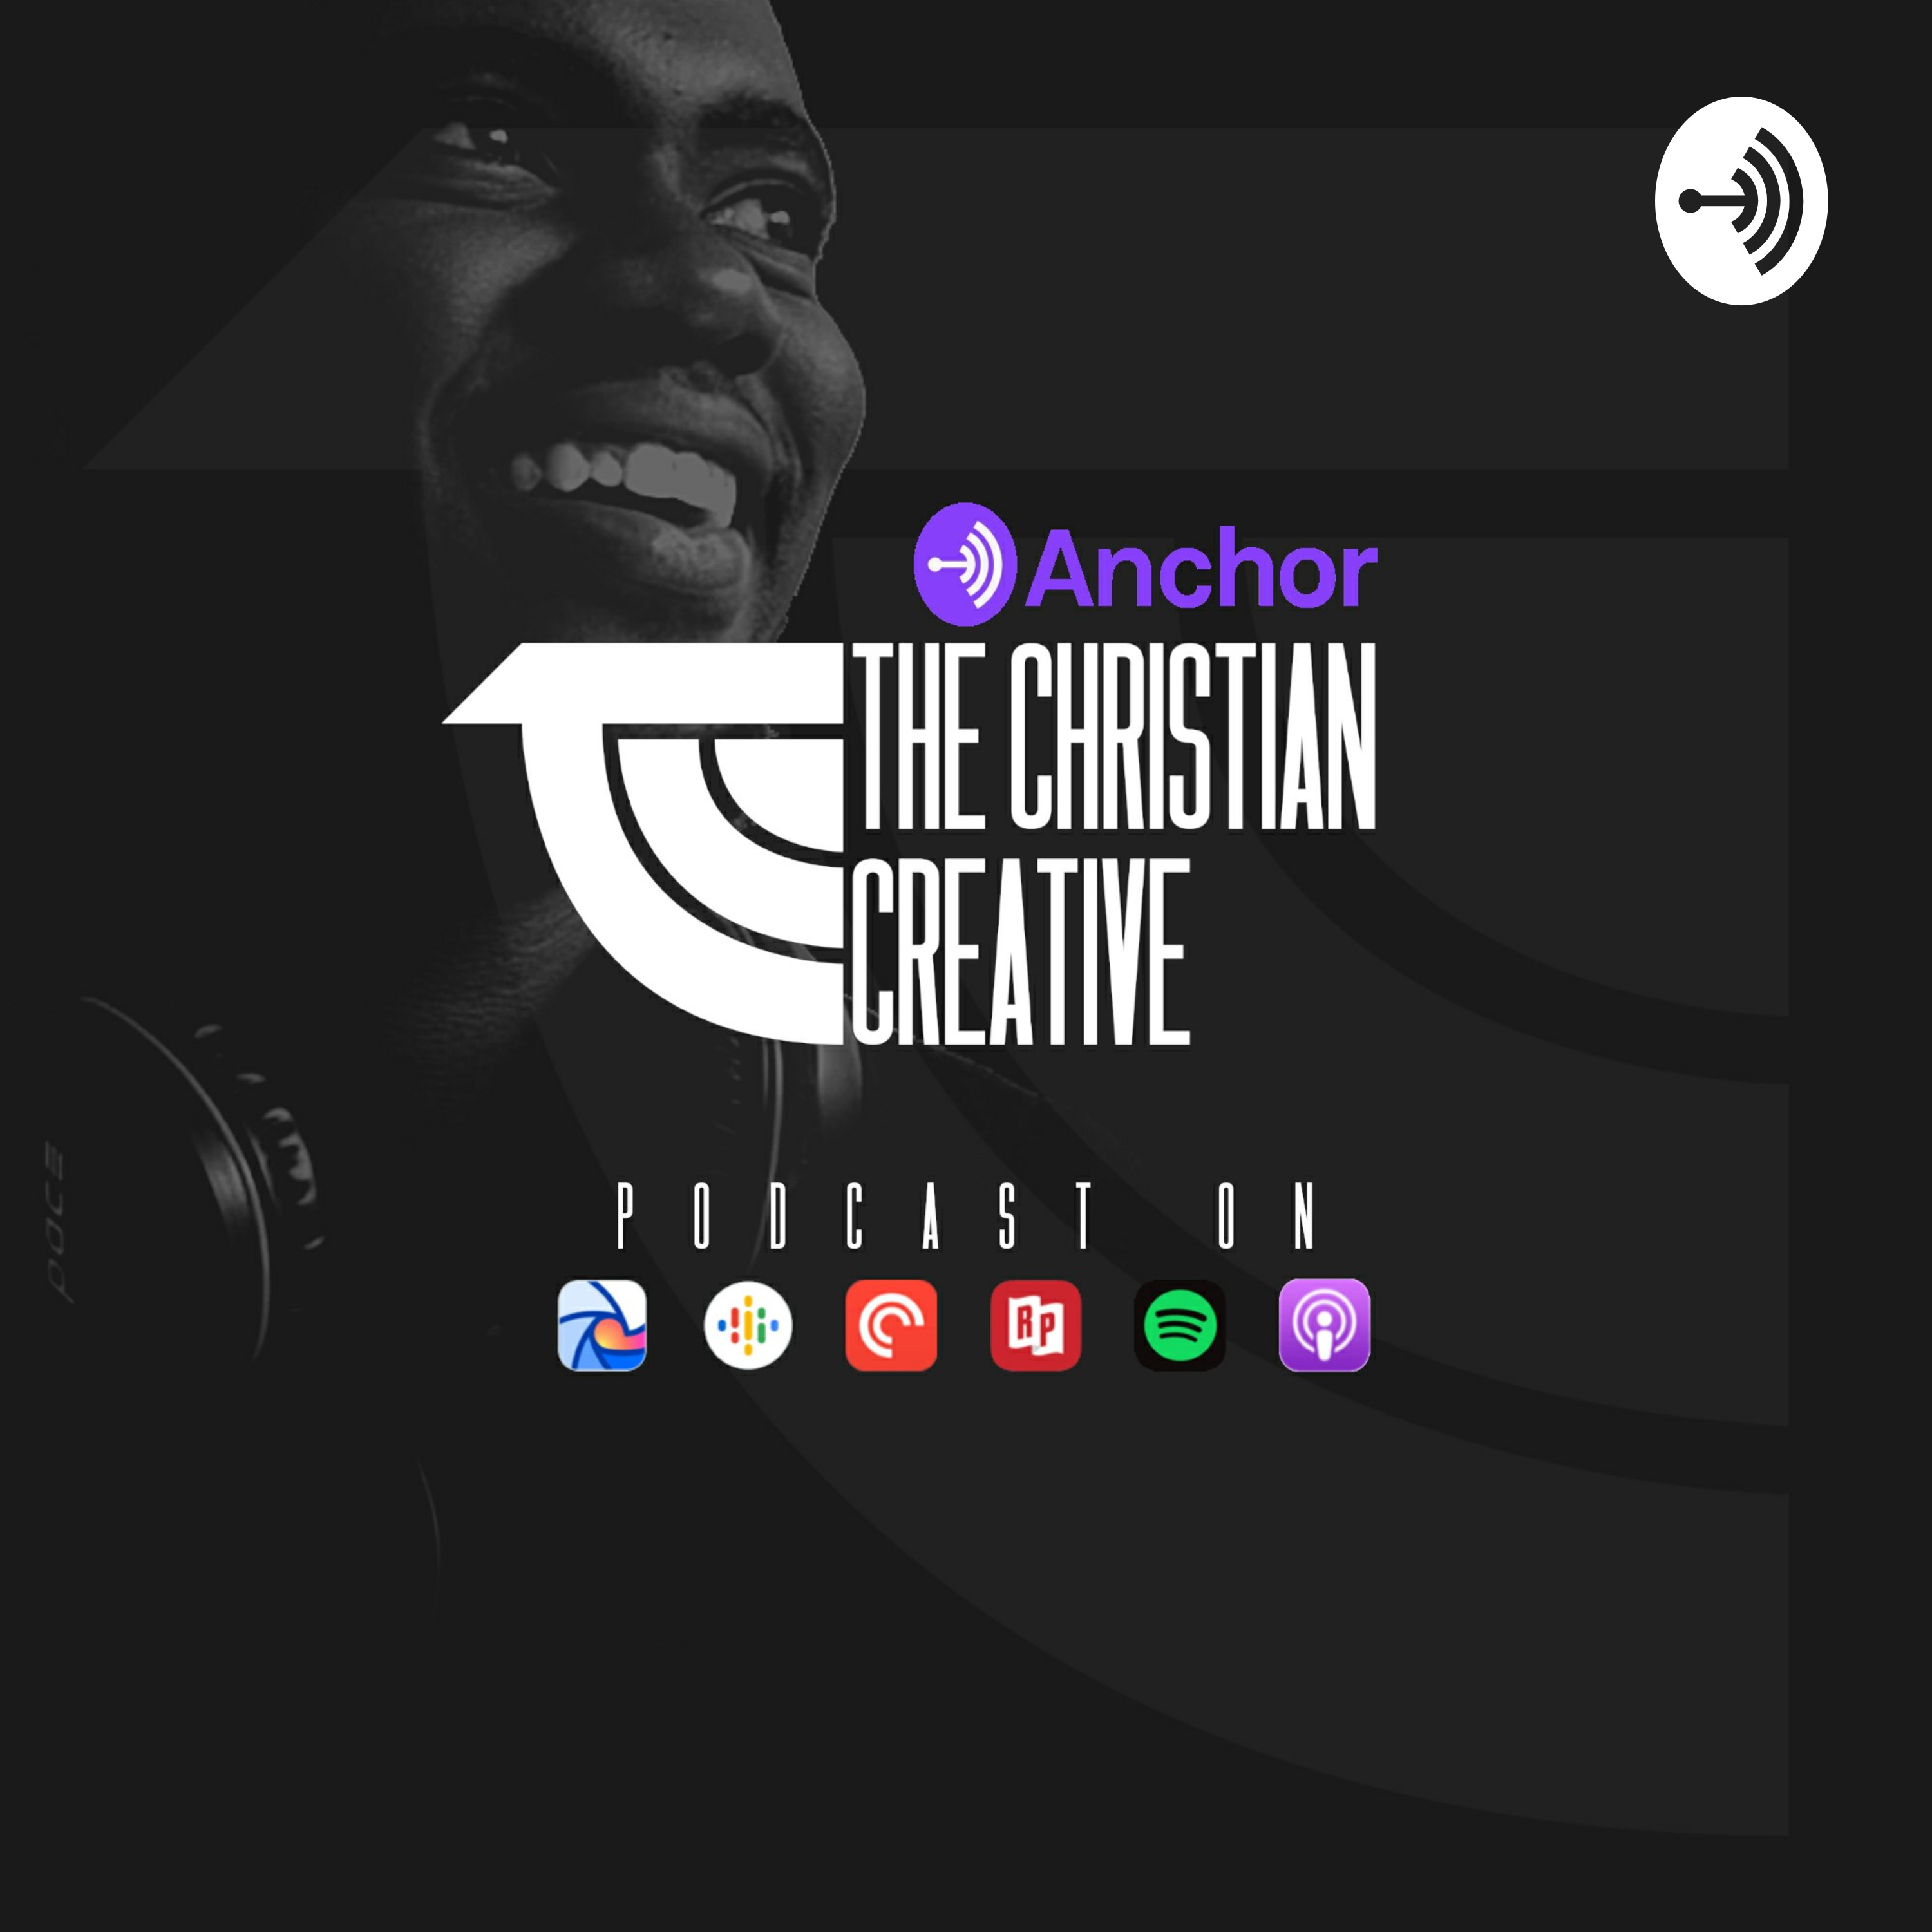 The Christian Creative